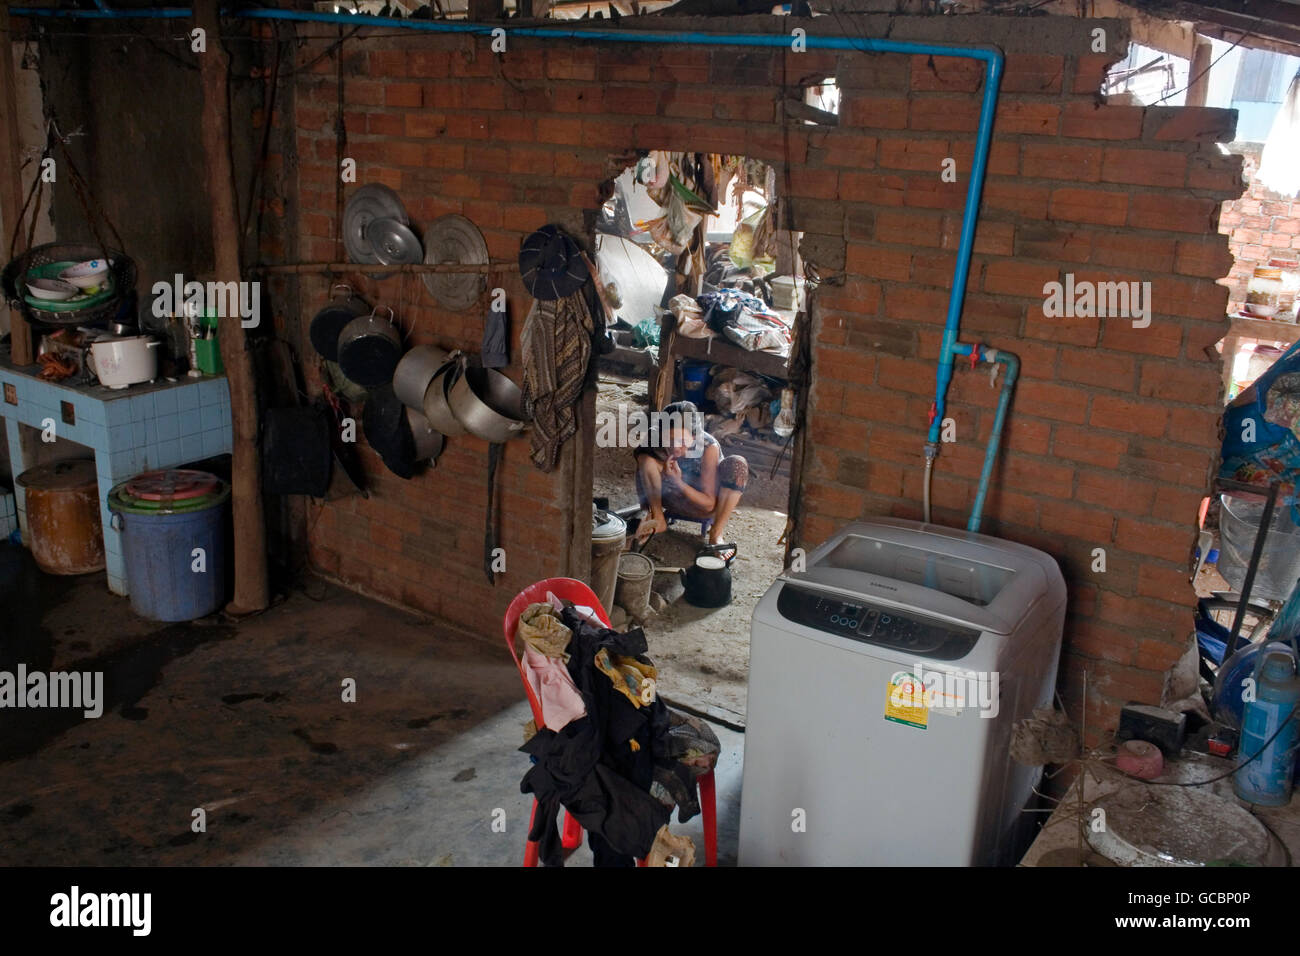 A woman is cooking near a Samsung washing machine in a messy house in Chork Village, Cambodia. - Stock Image